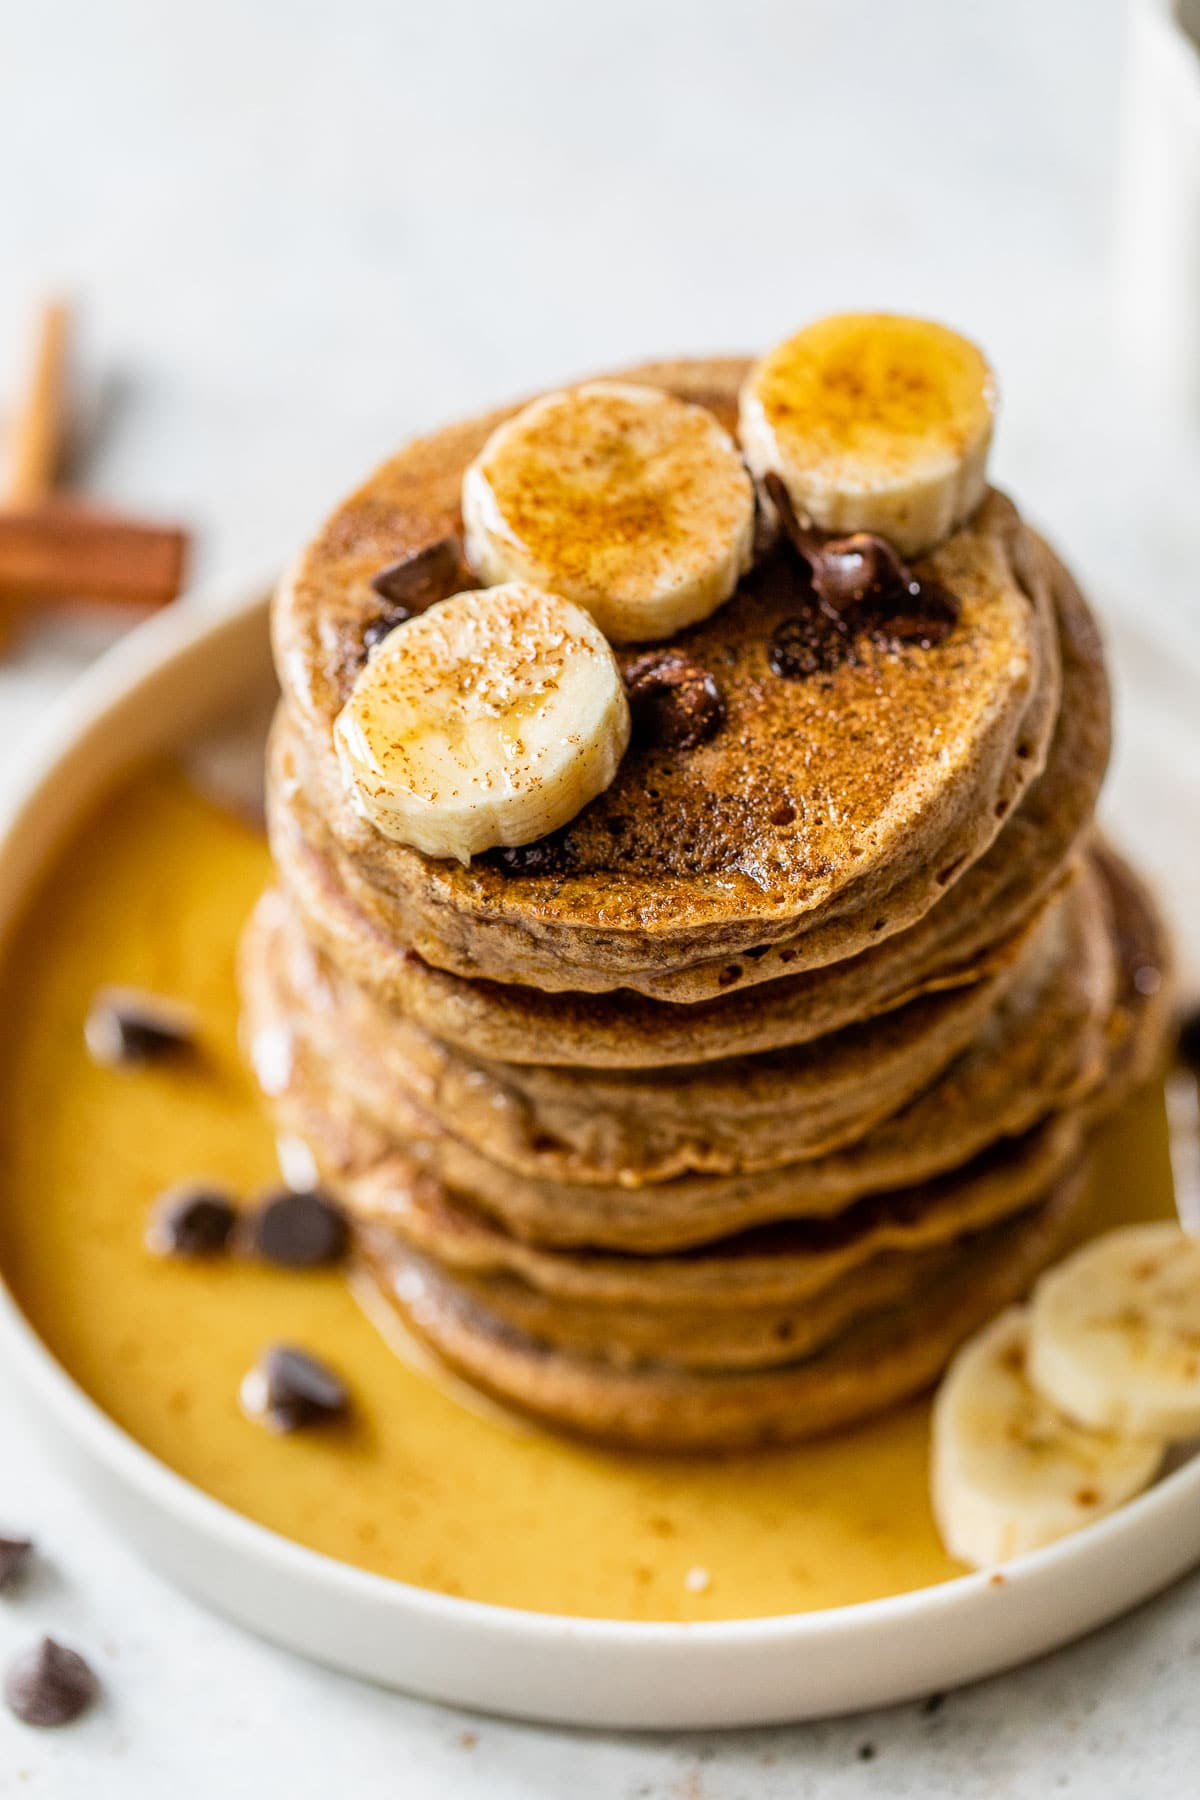 pancakes on a plate topped with chocolate chips, slices of banana and maple syrup